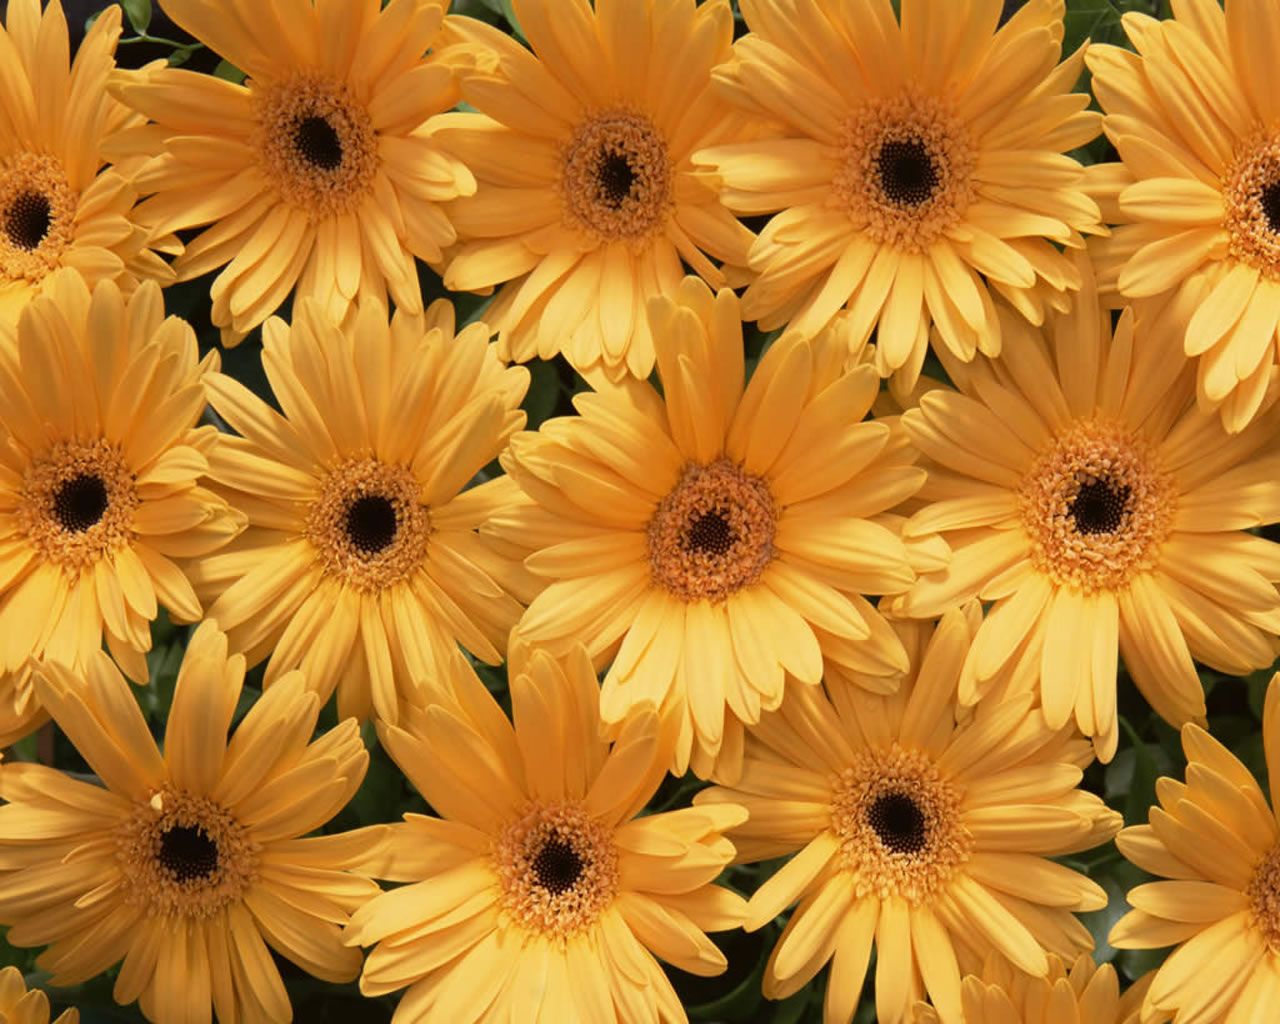 Flowers pictures flowers wallpapers beautiful yellow flowers beautiful yellow flowers wallpapers izmirmasajfo